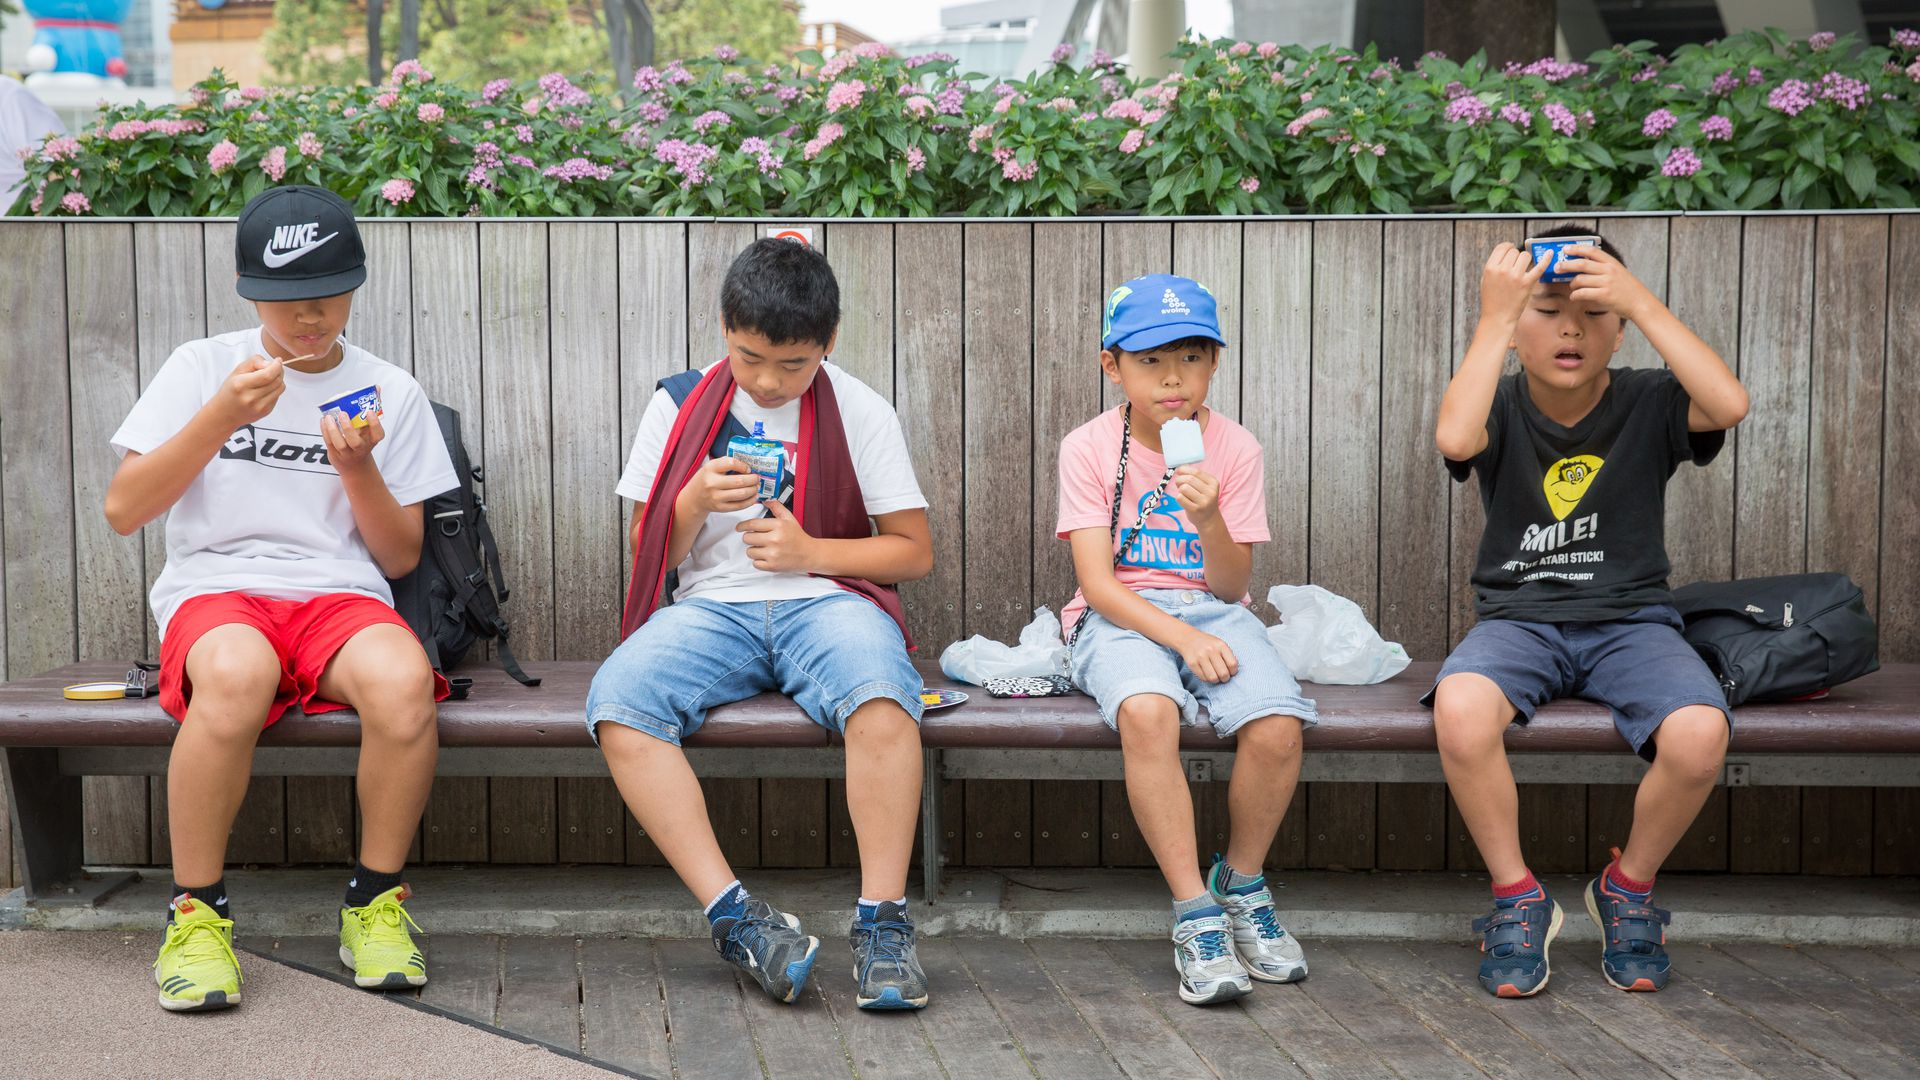 Children eat ice creams as they try and keep cool on July 22, 2018 in Roppongi, Tokyo, Japan.